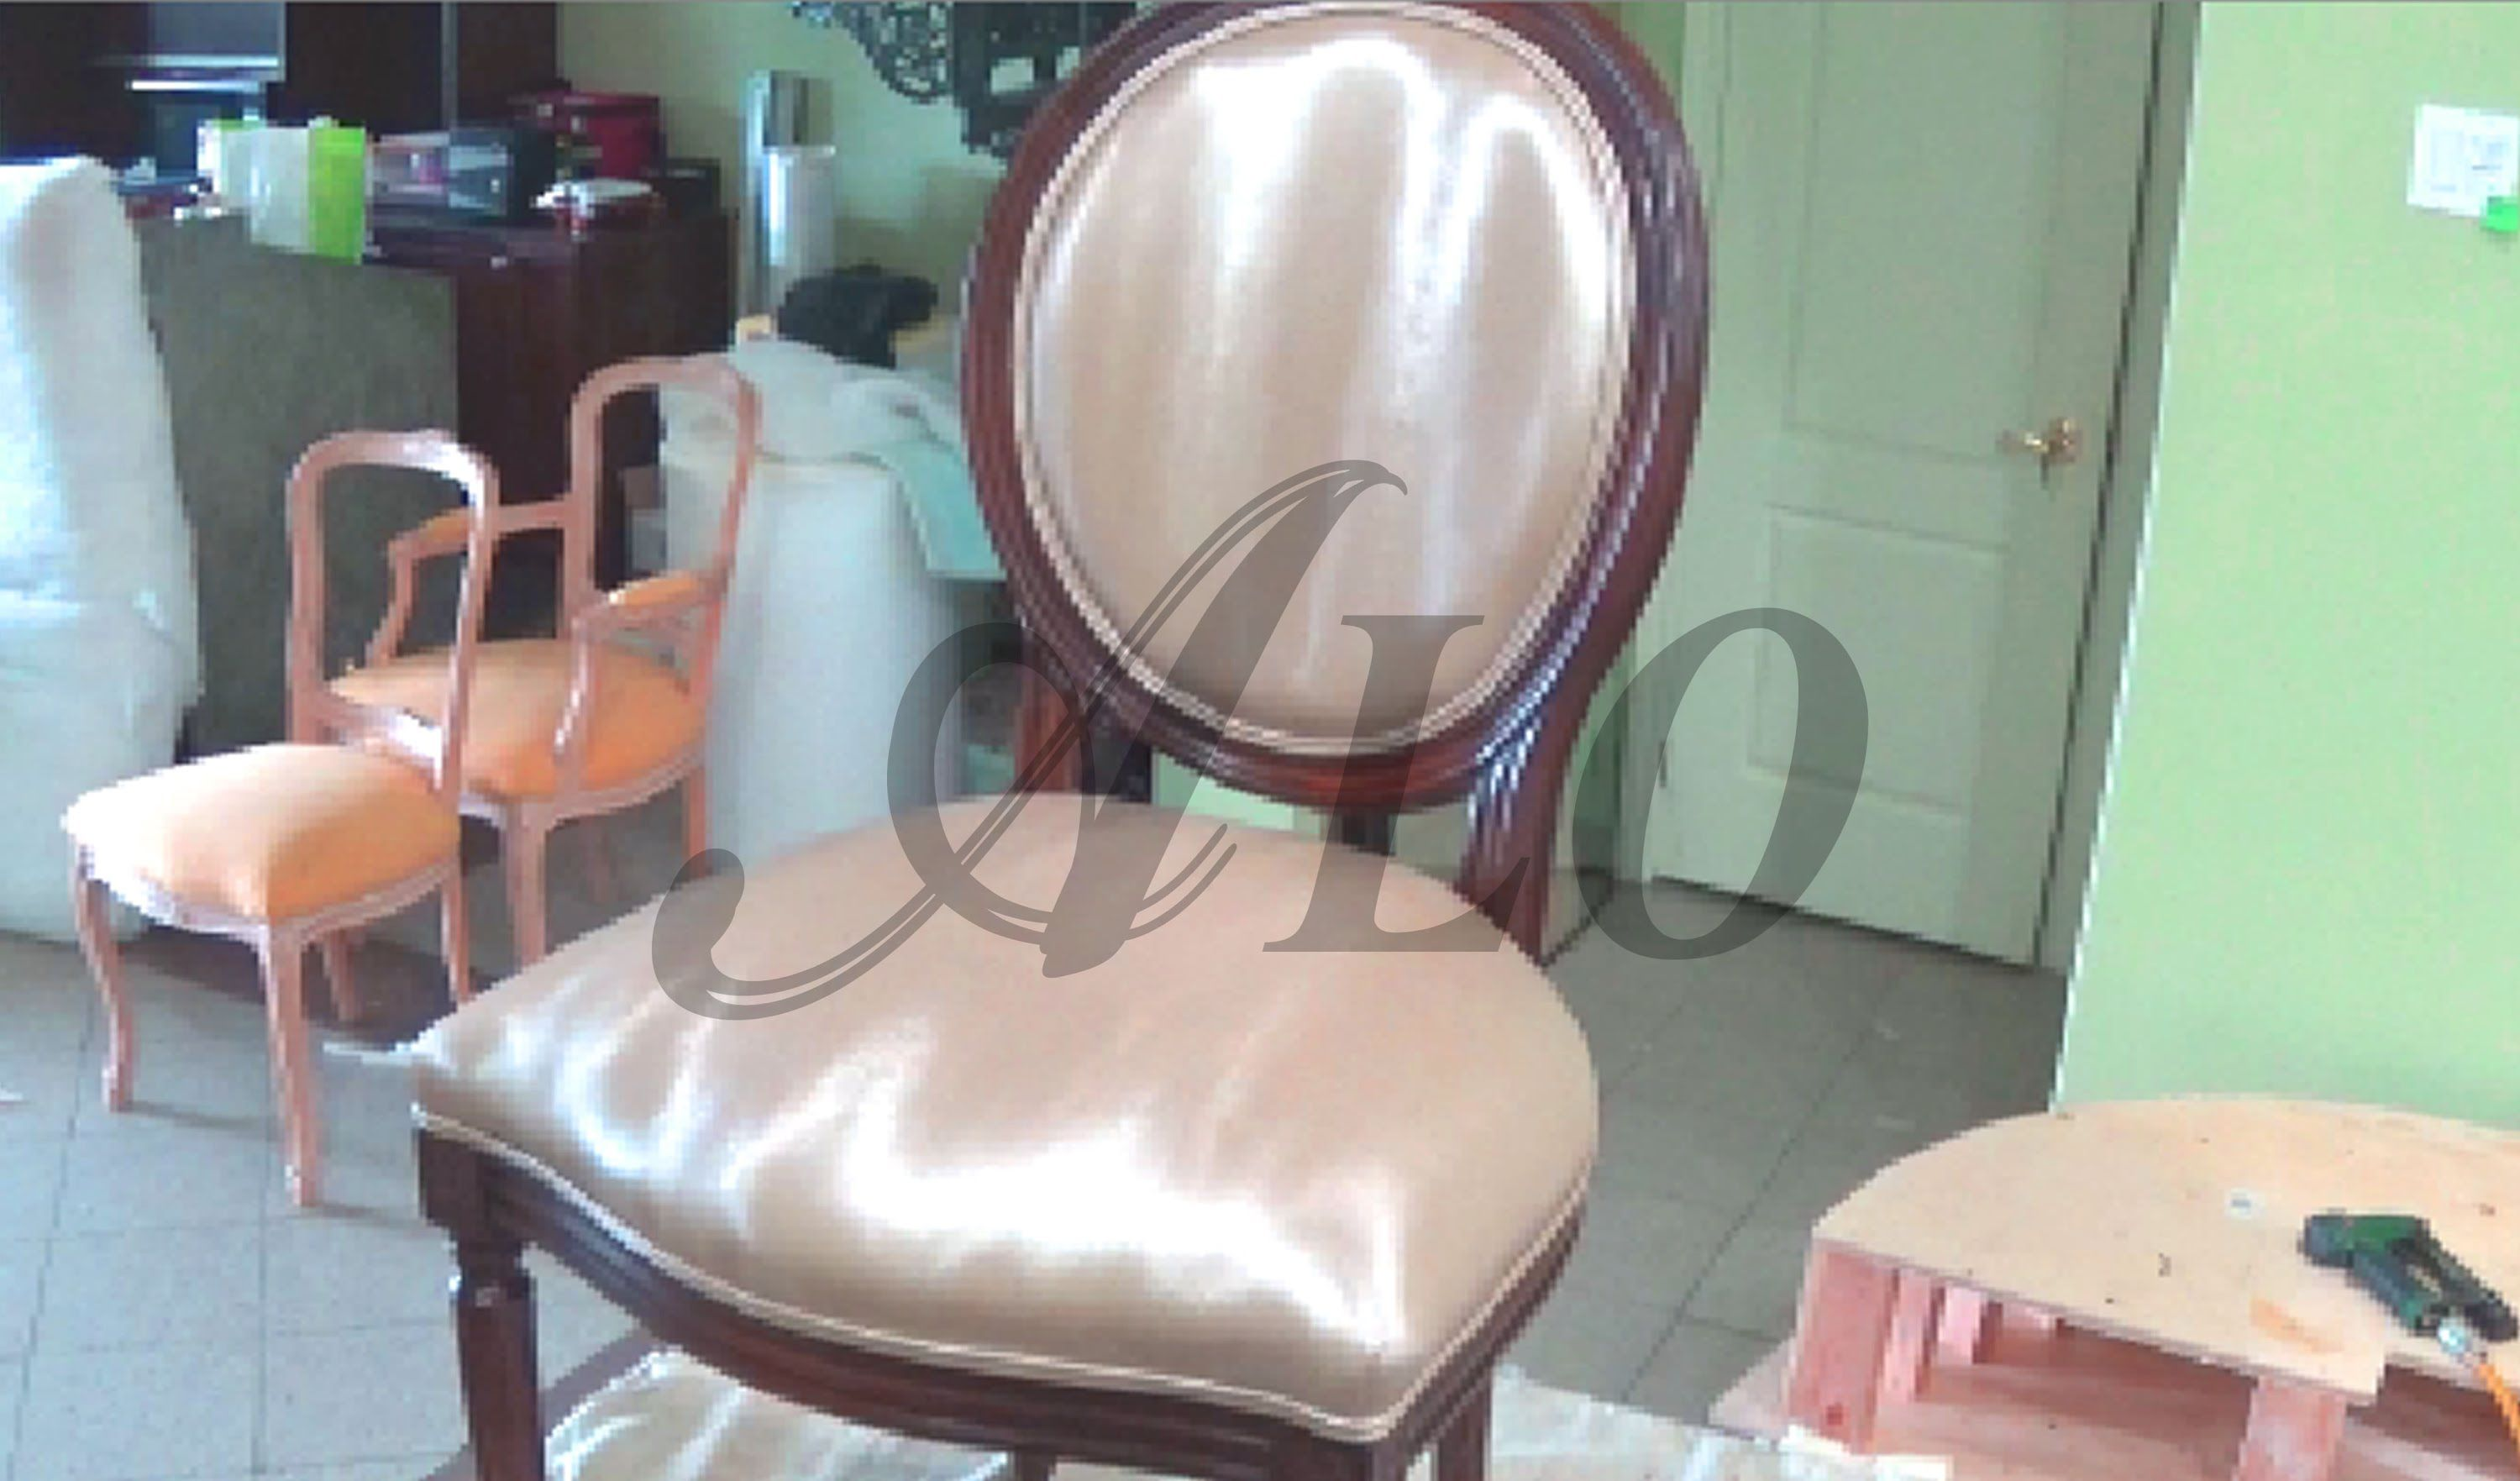 This is the longest episode in the series but I think itu0027s the most important since it shows how I upholstered each panel of the chair. & HOW TO UPHOLSTER A DINING ROOM CHAIR - ALOWORLD | DIY COMO restaurar ...